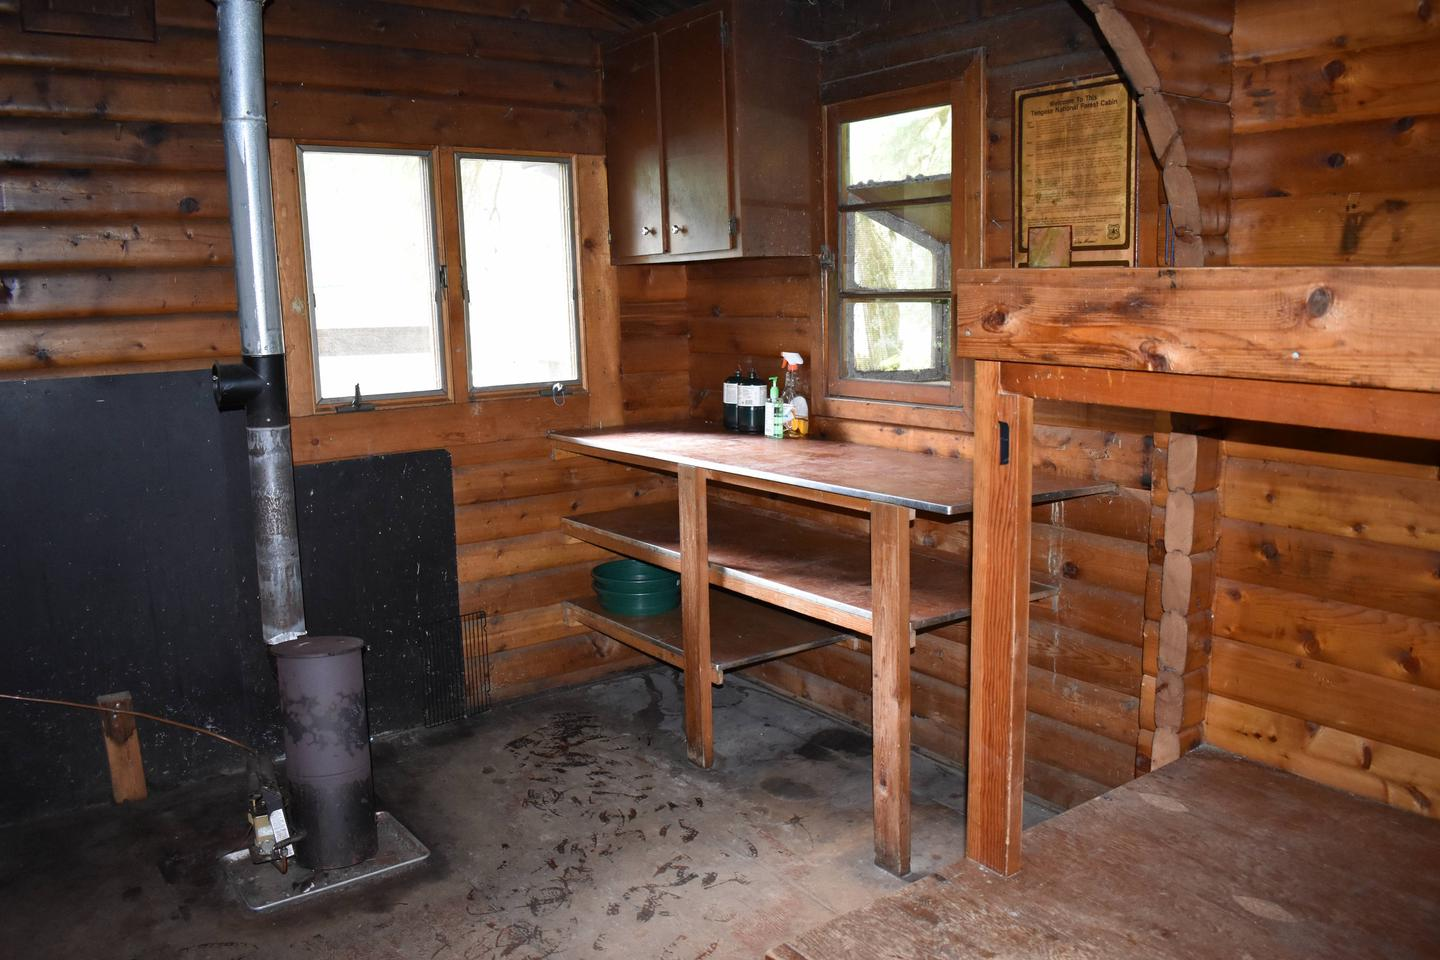 Kitchen area and oil stove